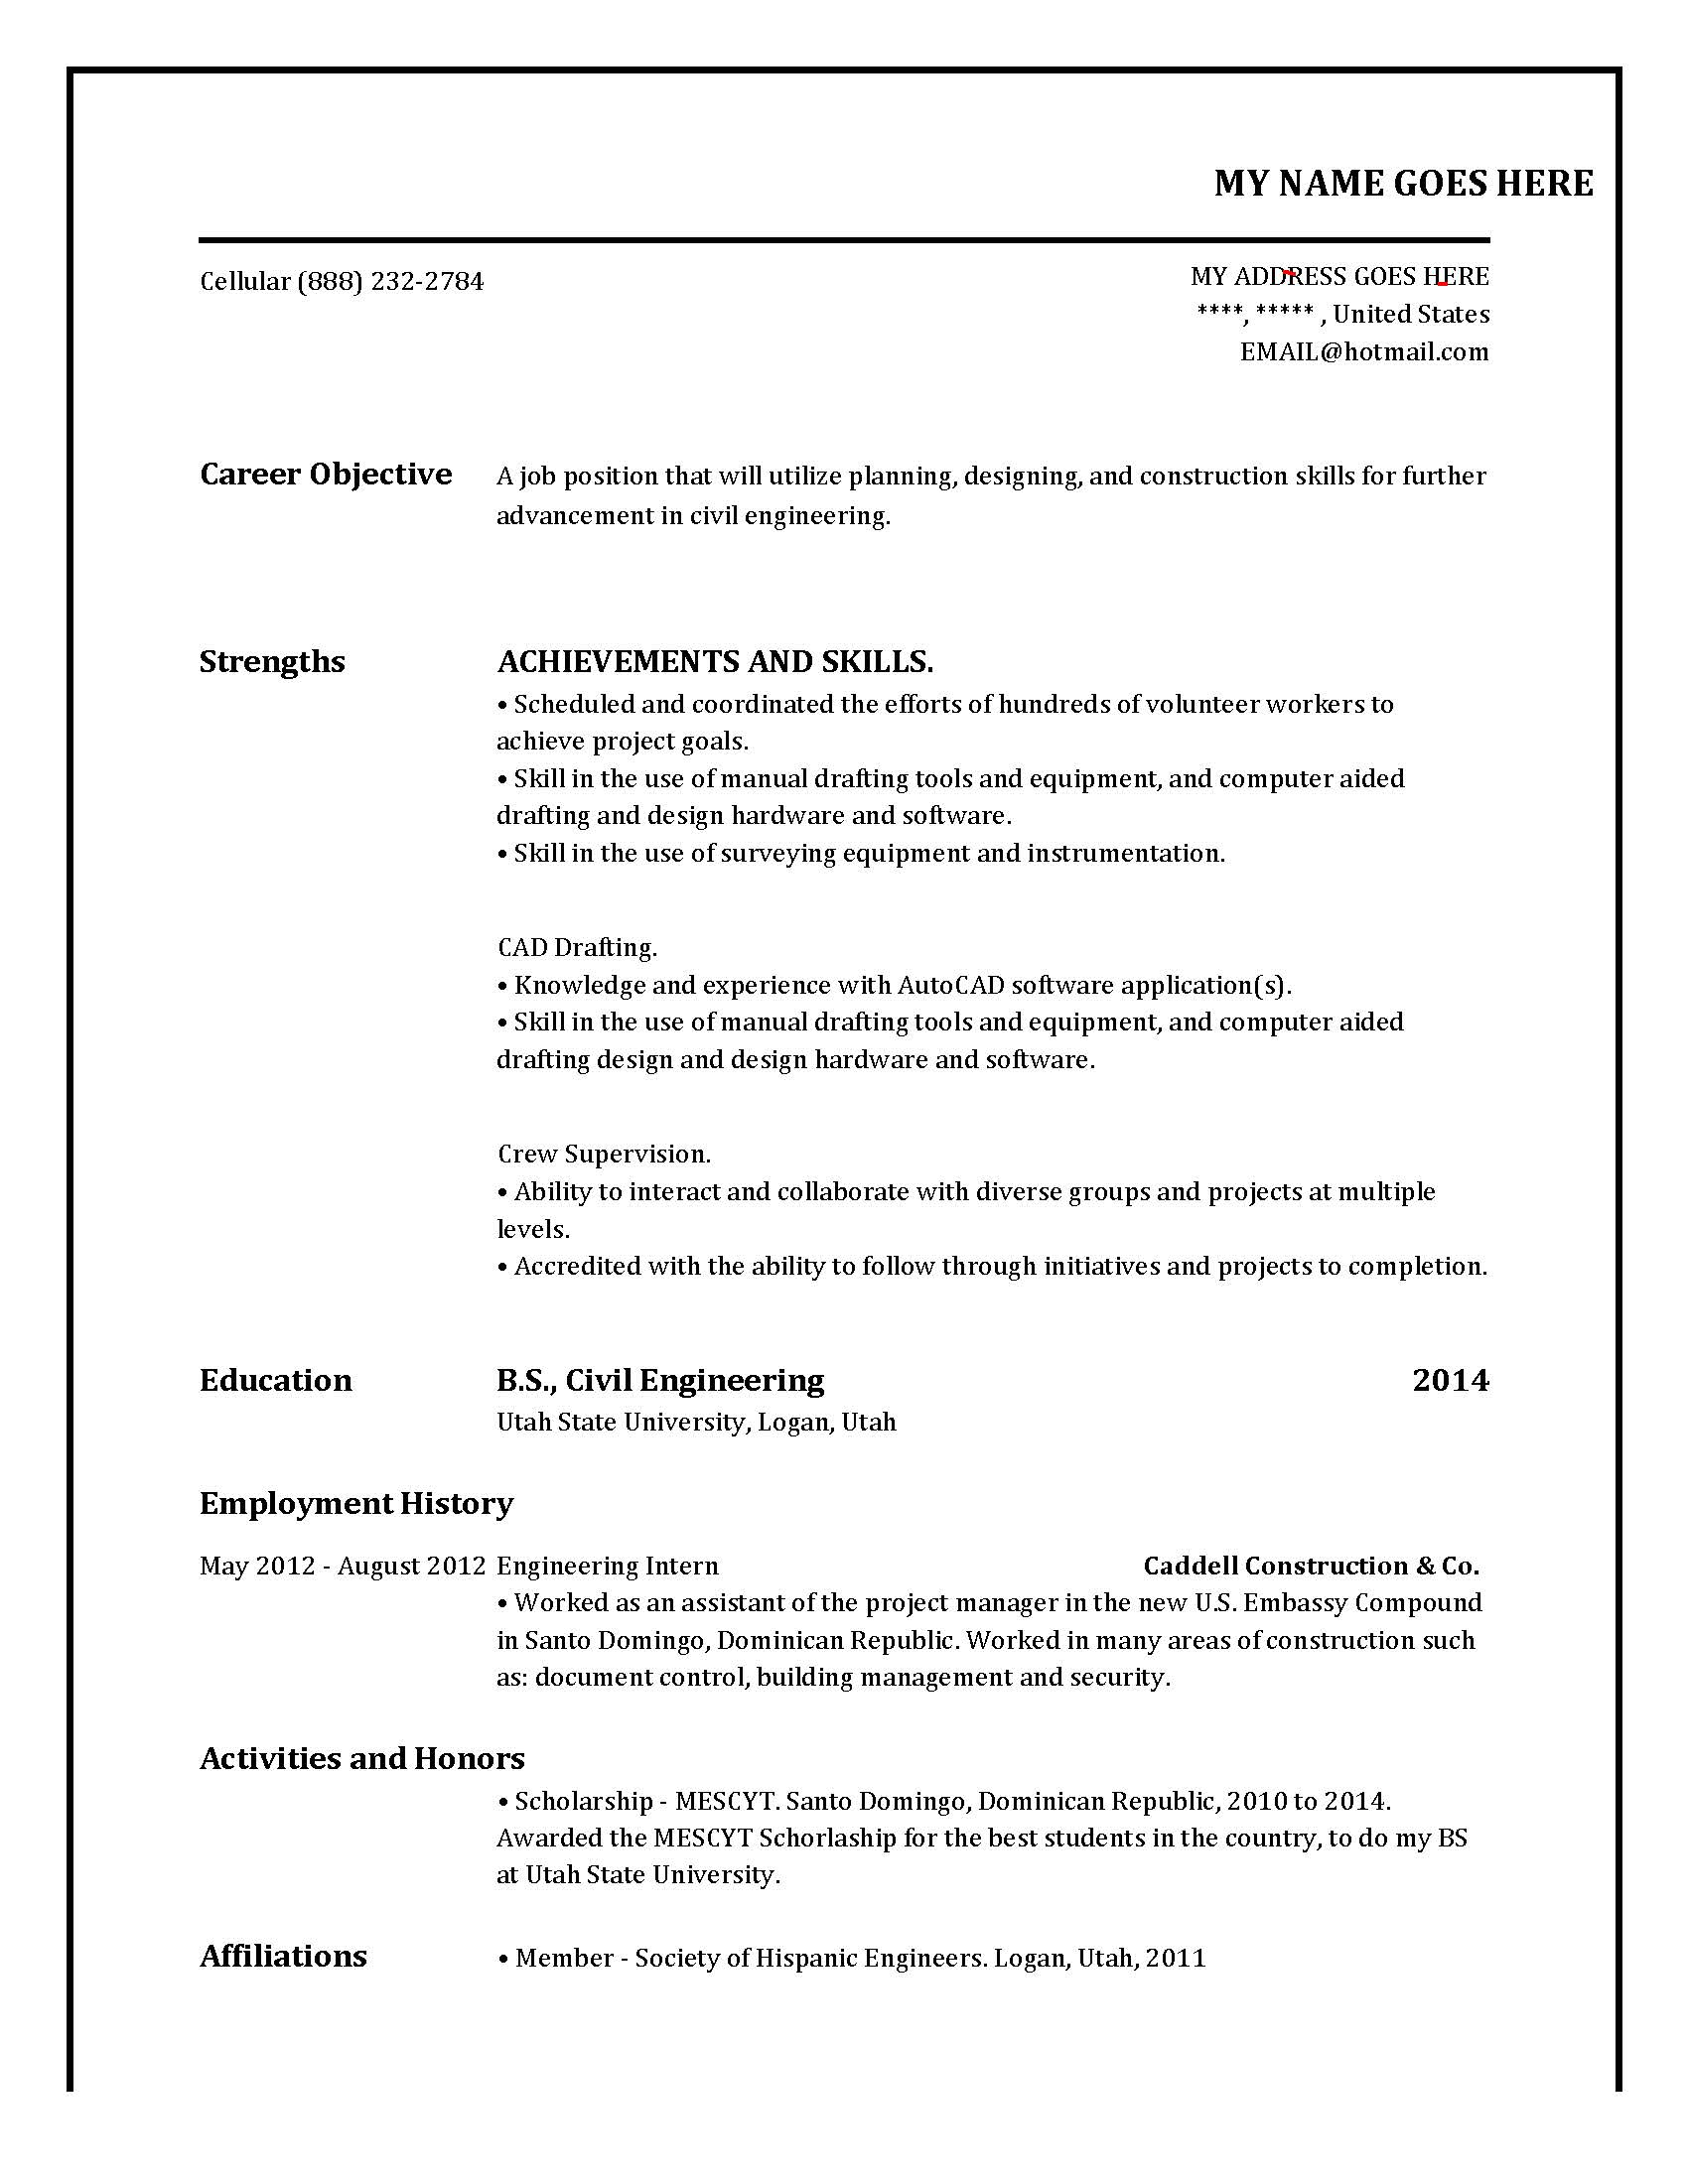 build my resume online tk category curriculum vitae - Build My Resume Free